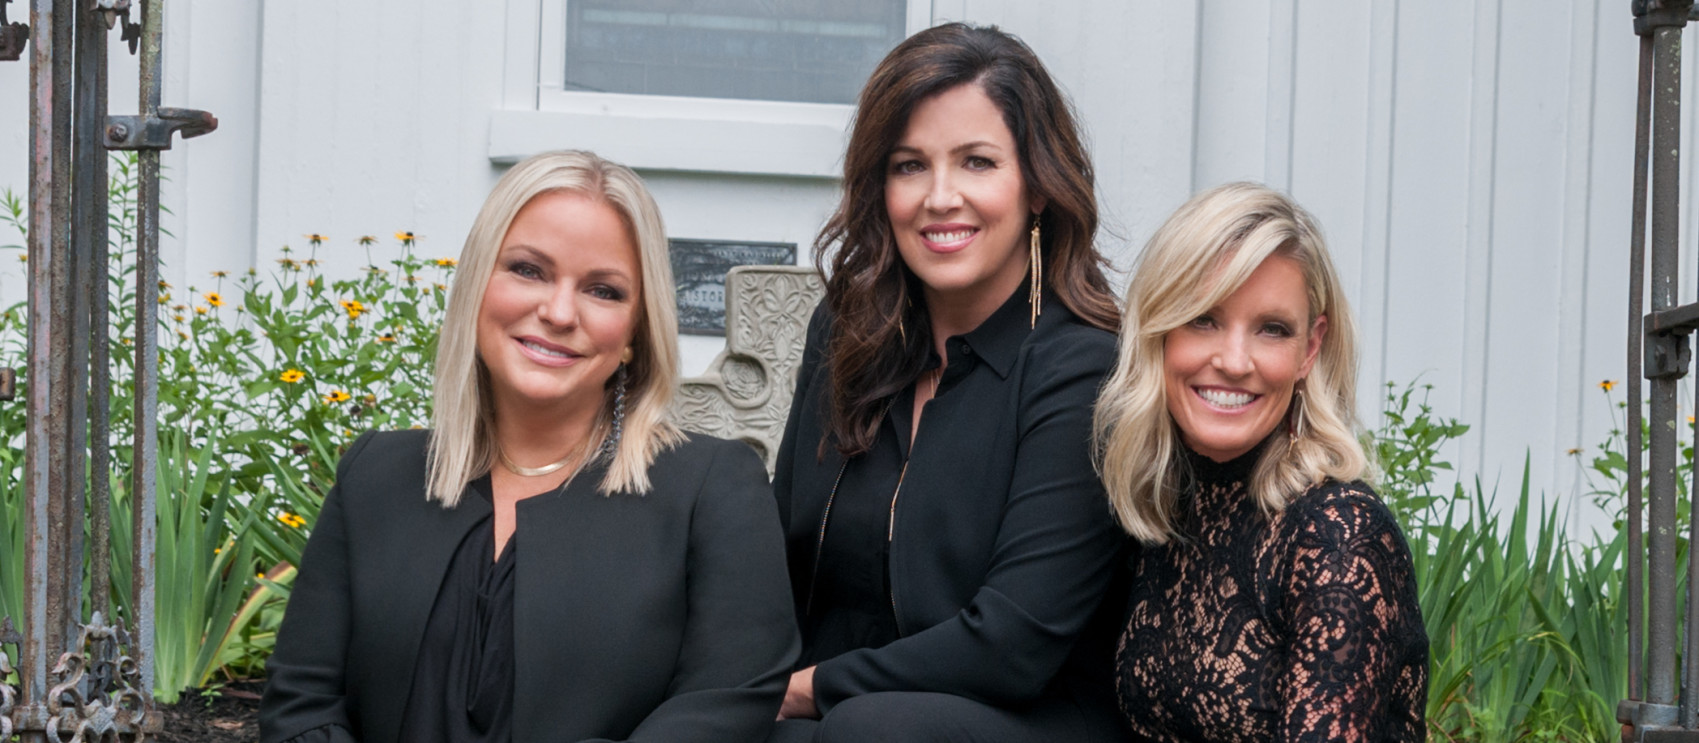 POINT OF GRACE TO APPEAR ON 'FOX & FRIENDS' MONDAY AHEAD OF CARNEGIE HALL PERFORMANCE